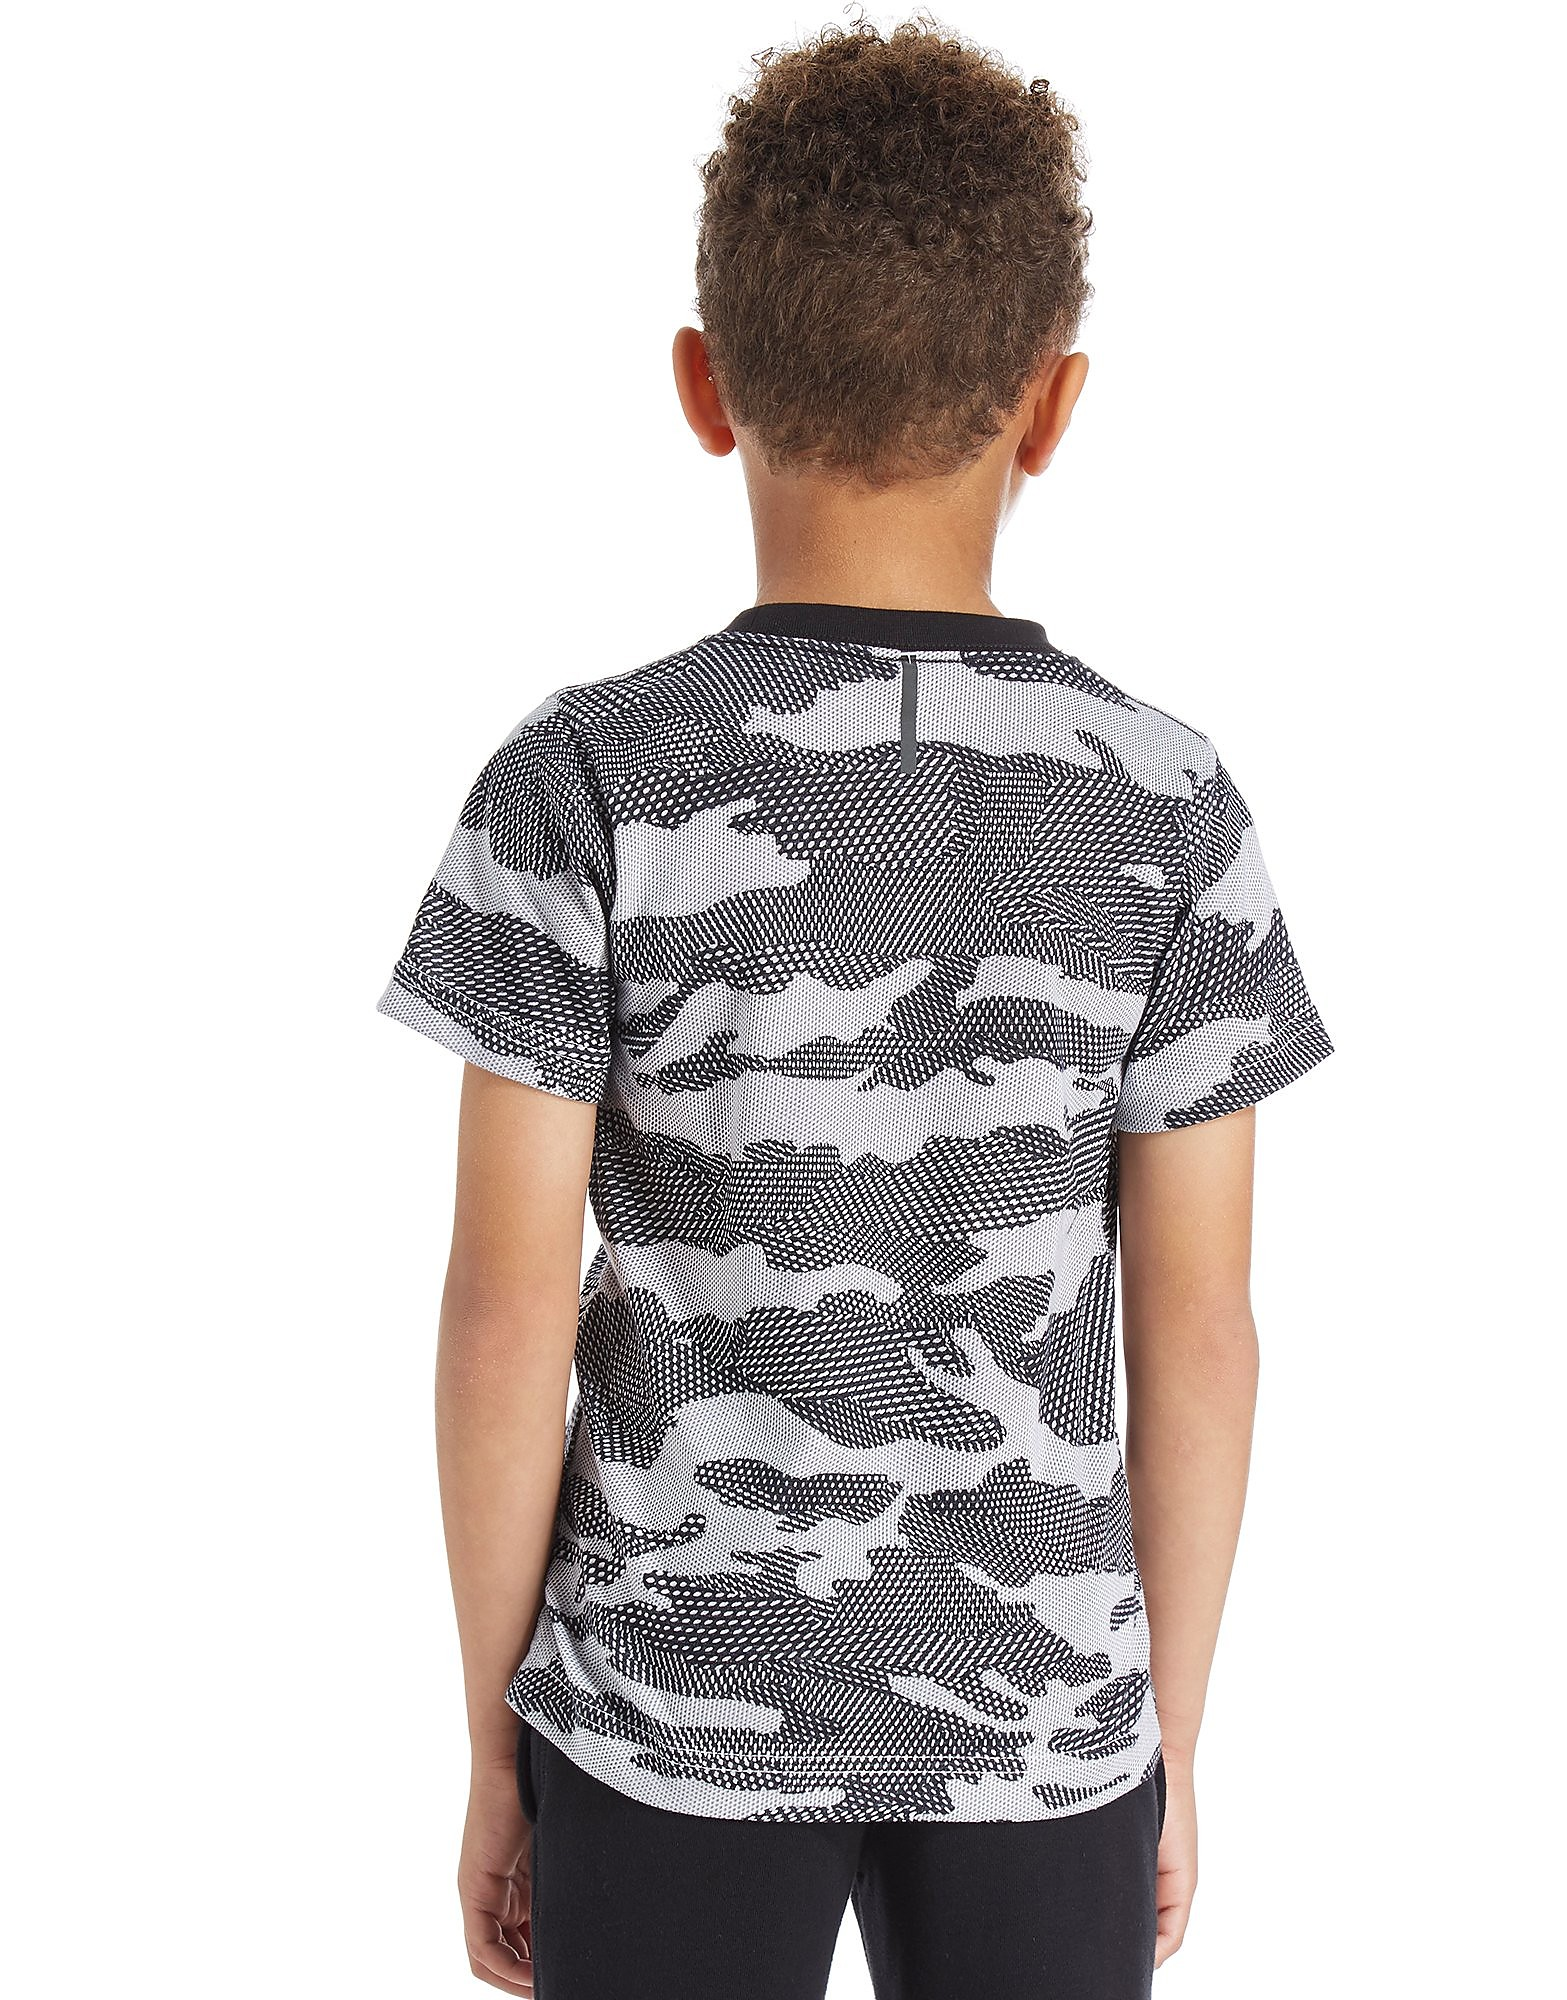 Nike All Over Print T-Shirt Bambino